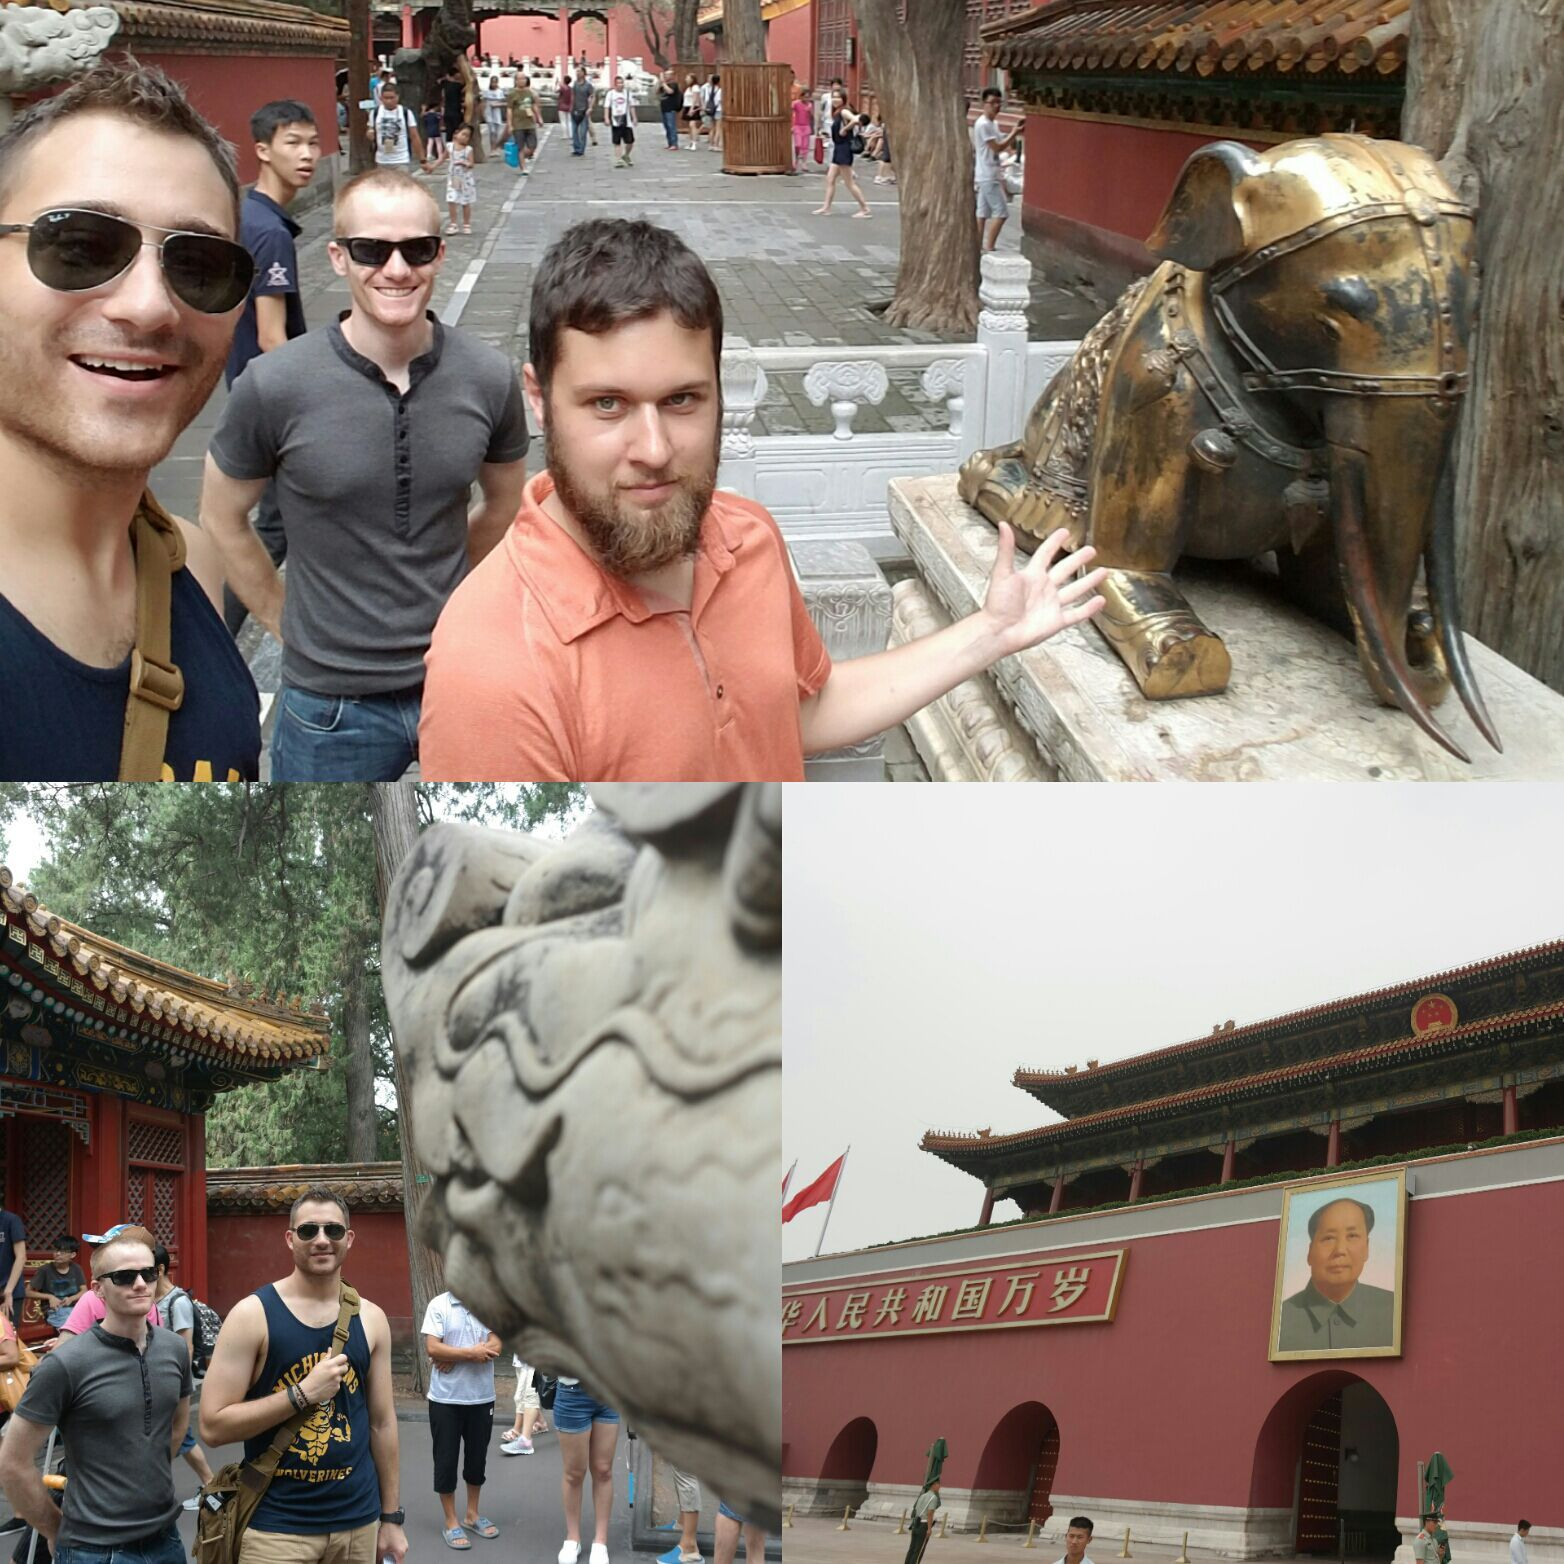 Beijing Day 9. Tiananmen Square and travel day to Xi'an